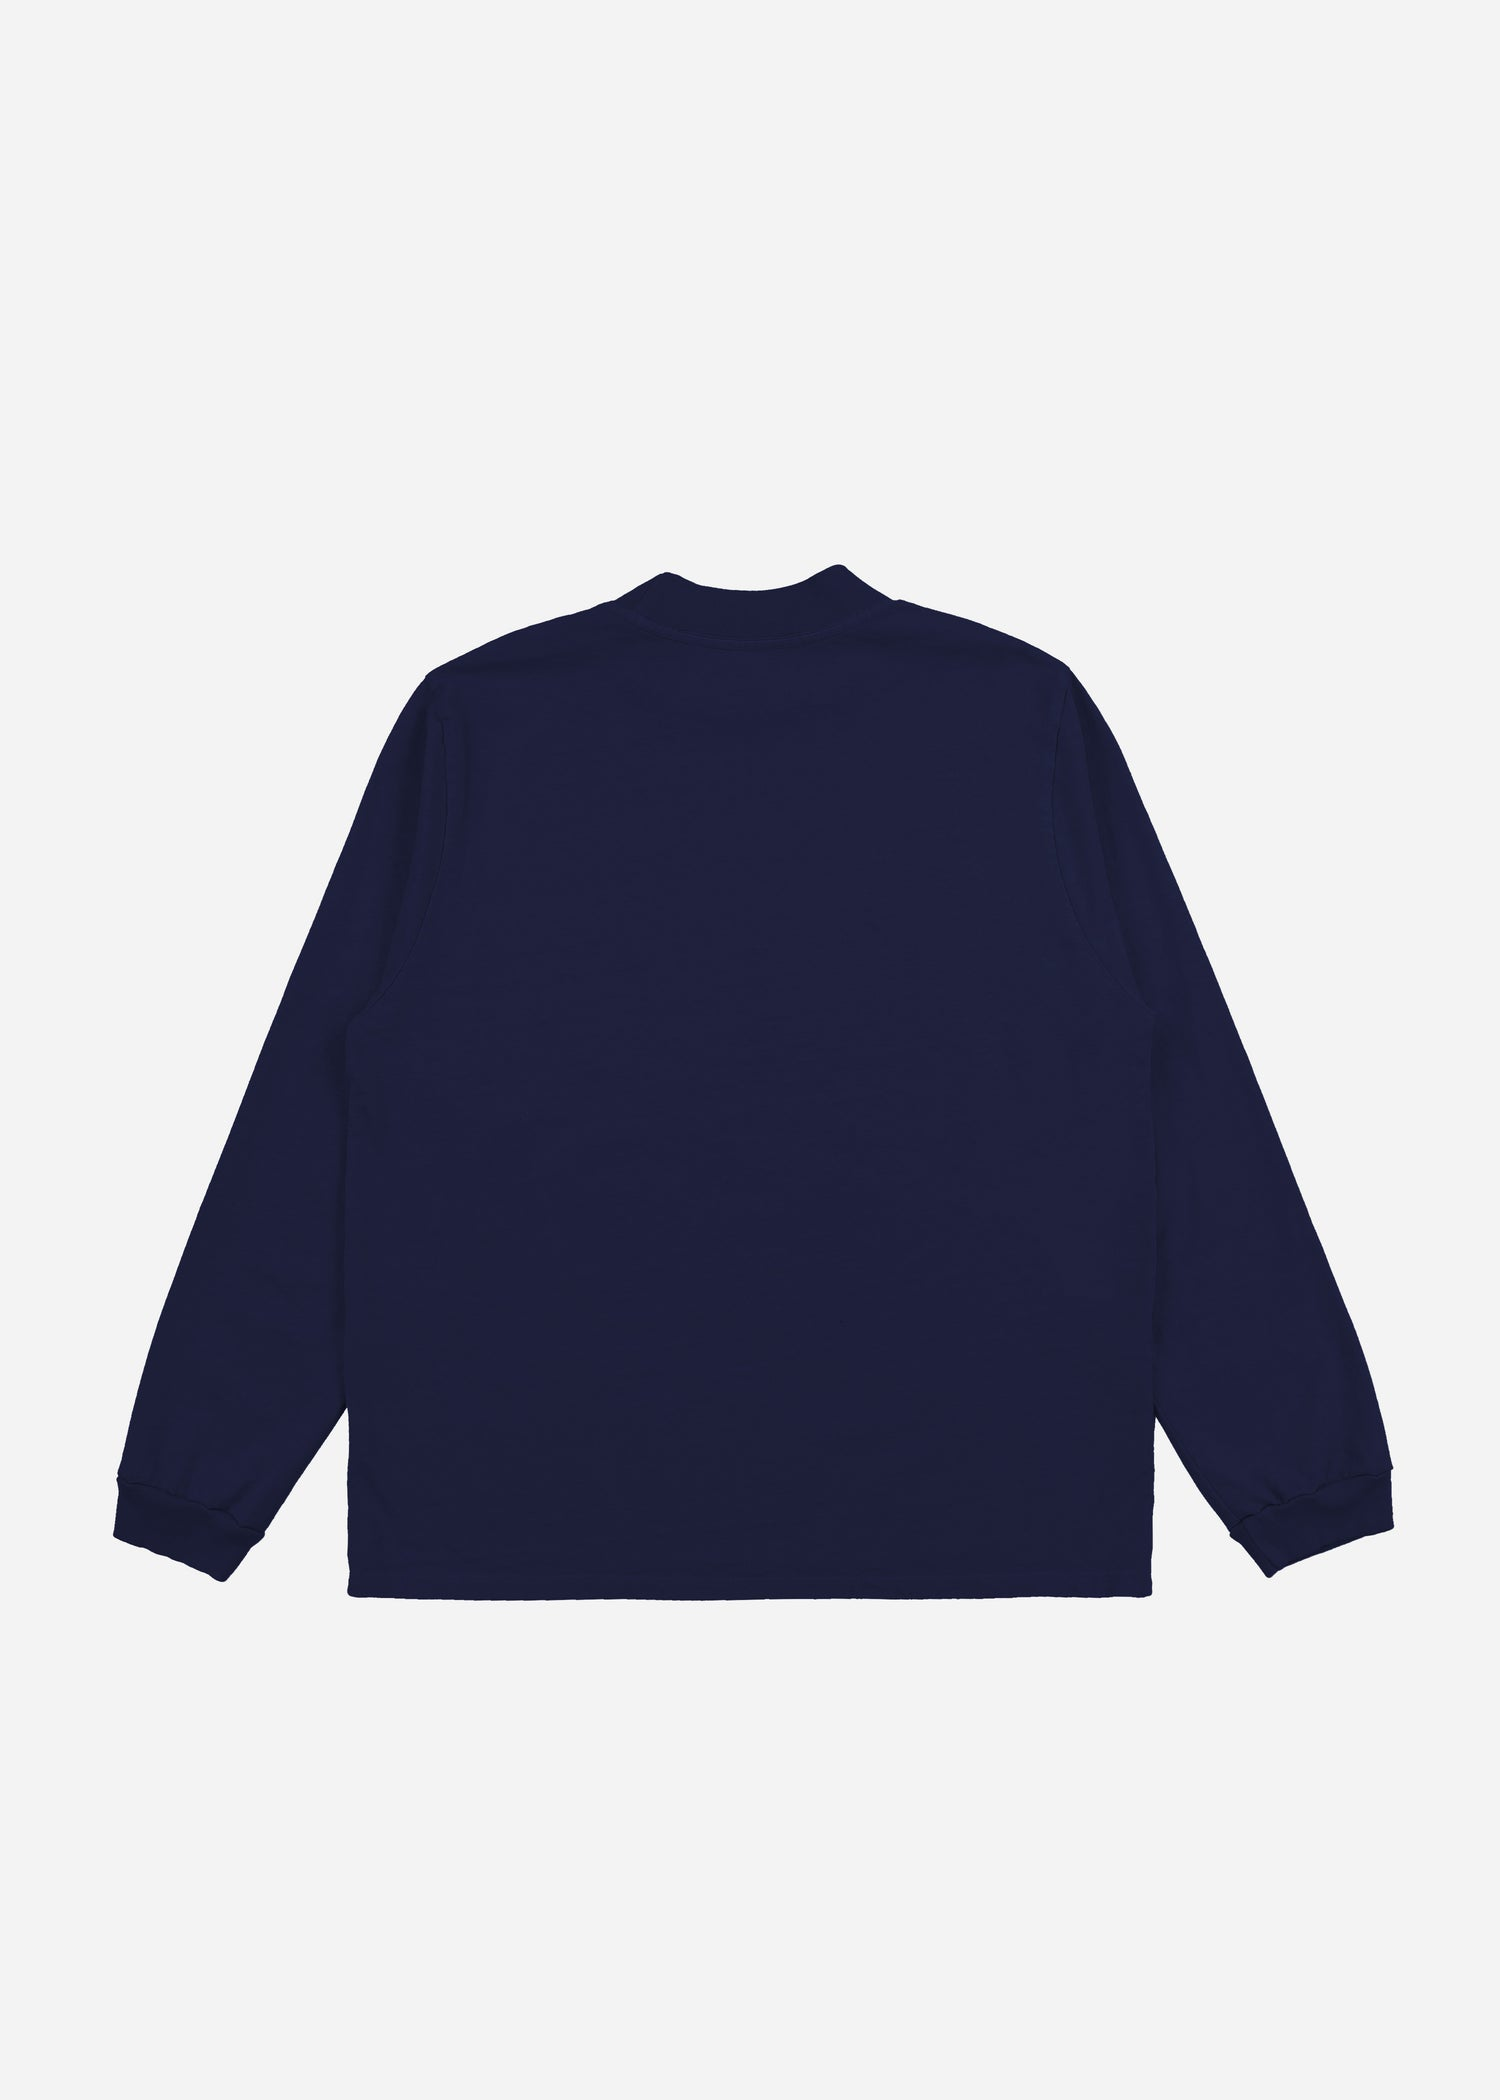 Mock Neck Long Sleeve Navy image-1